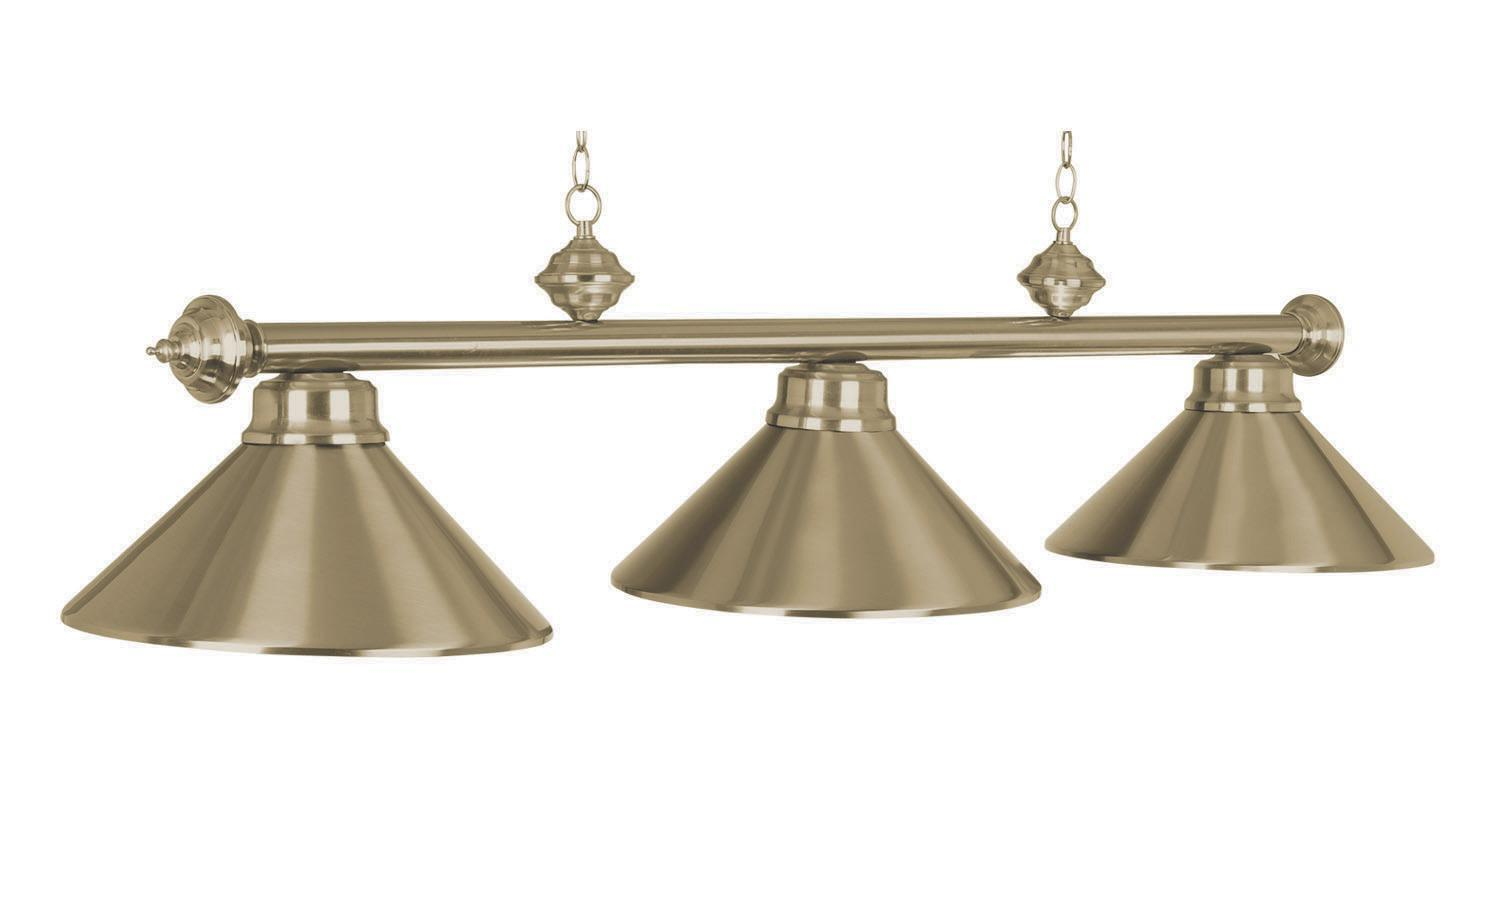 3 lamp bars billiard room lighting